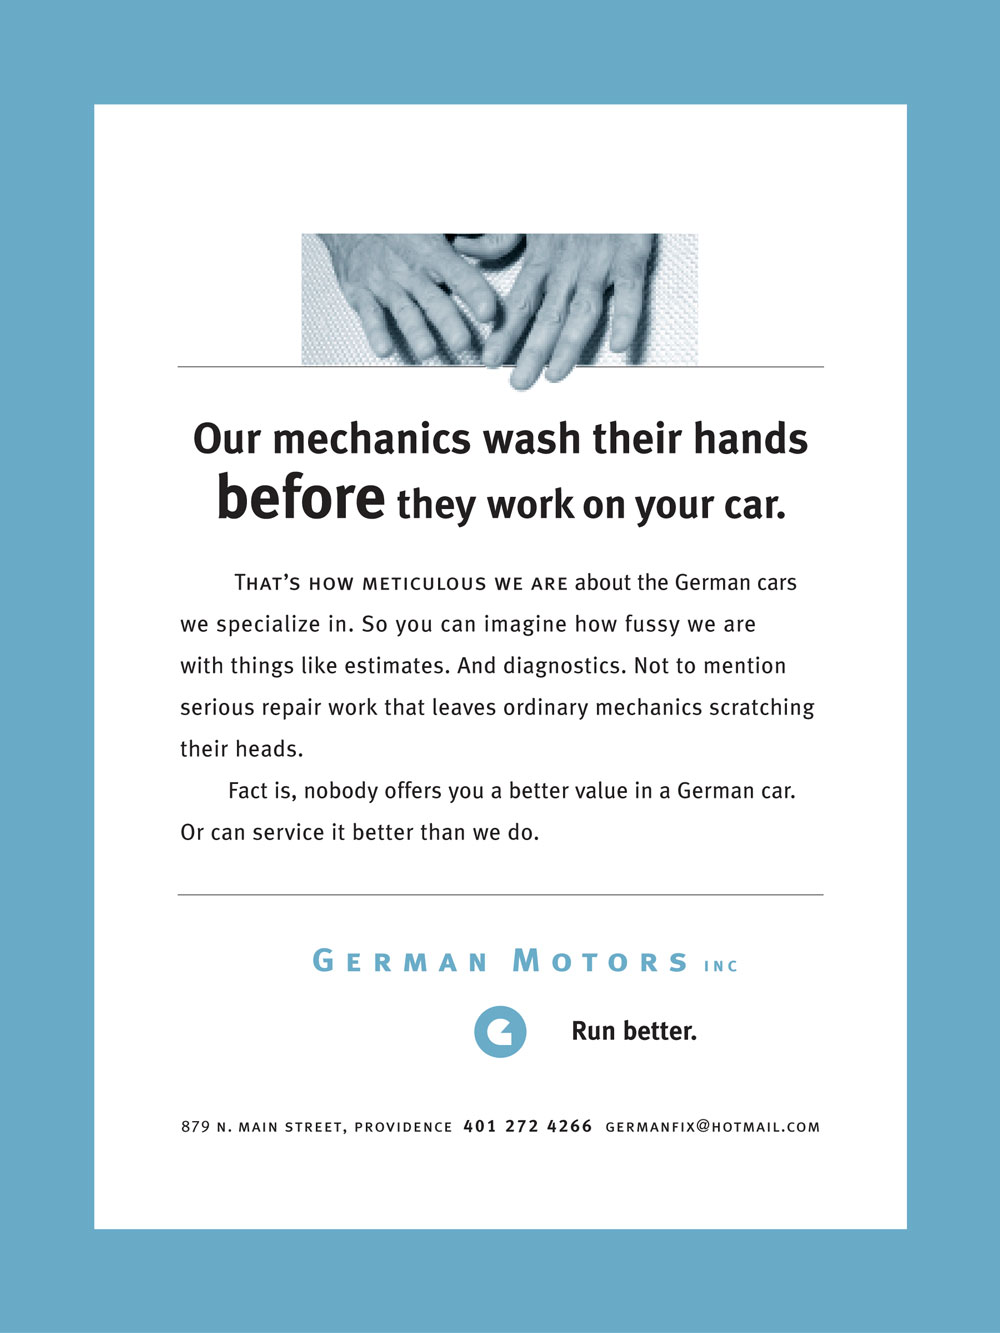 german_motors_ad